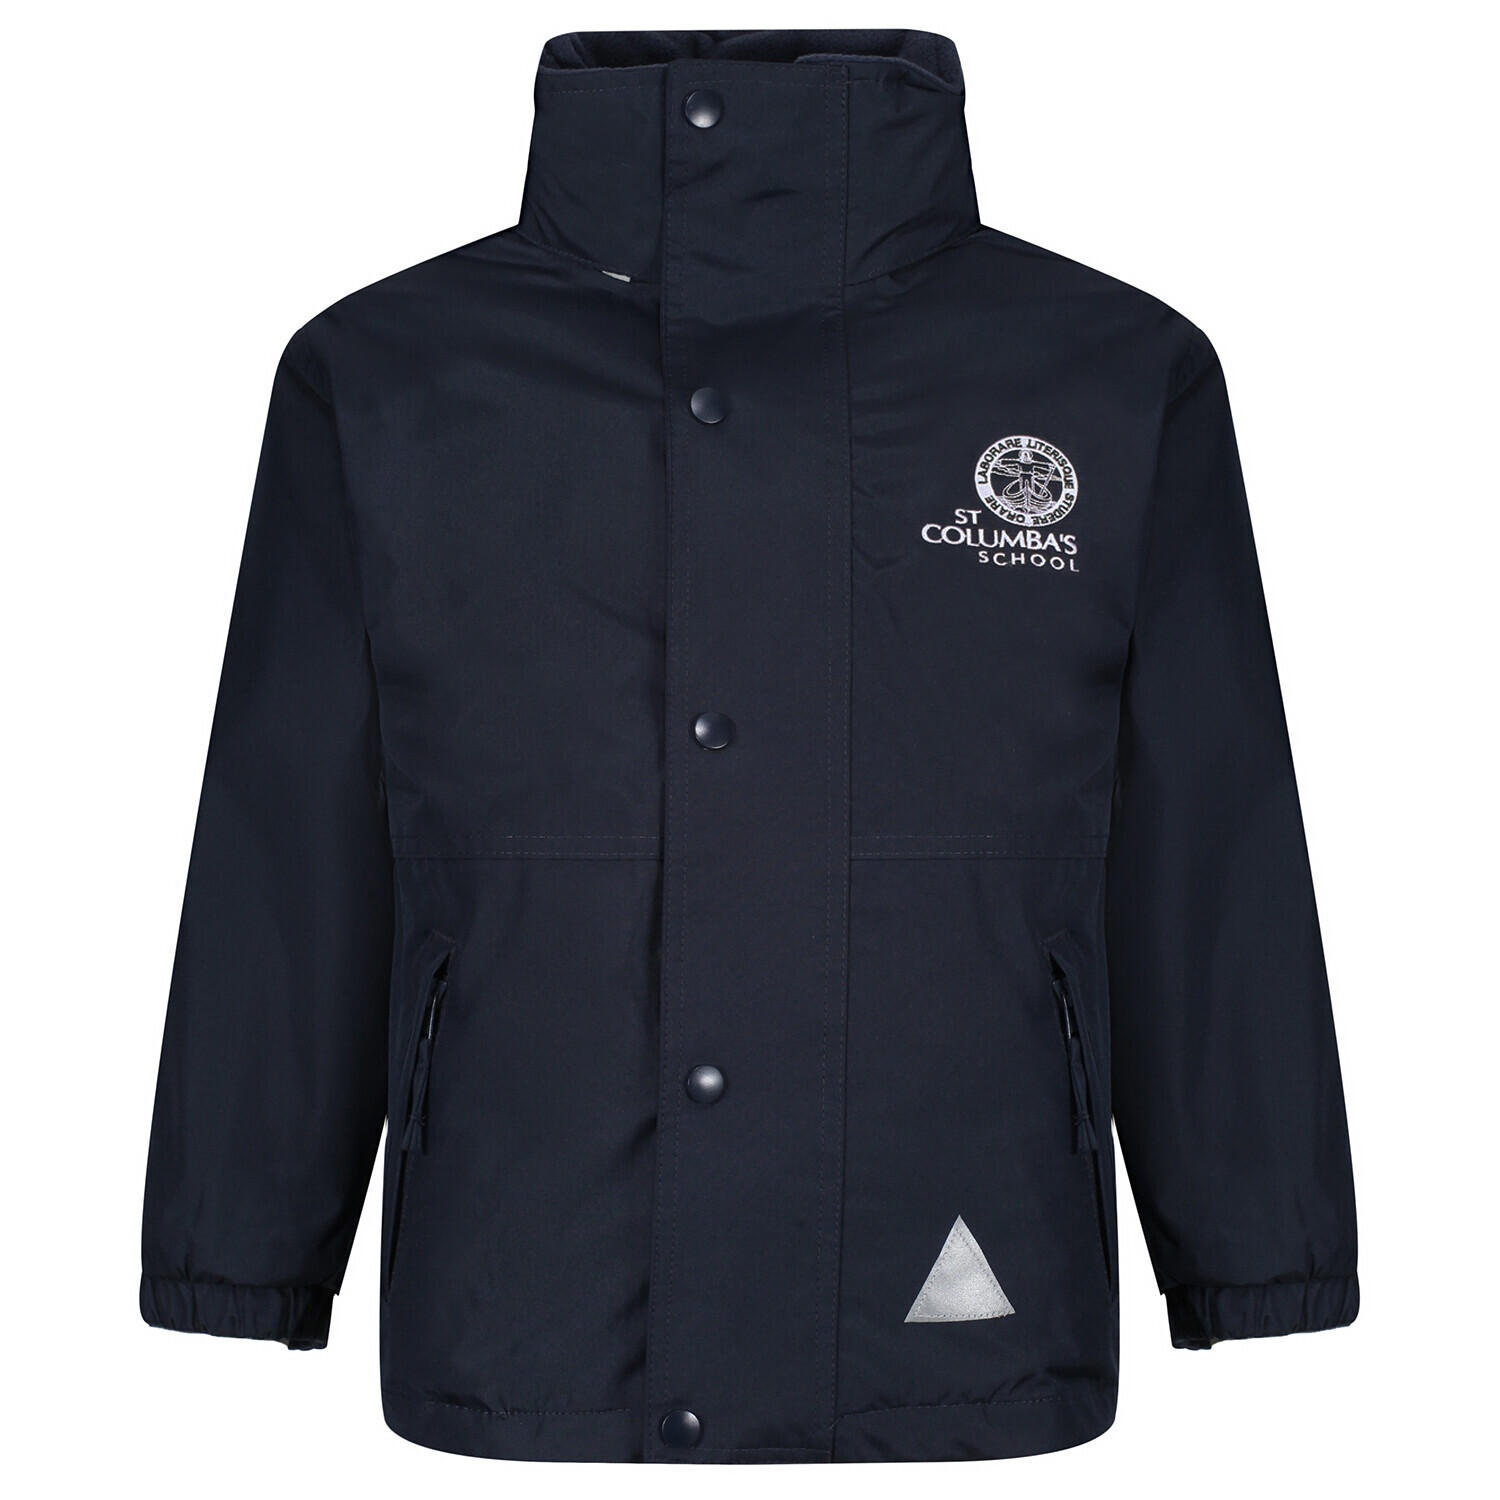 St Columba's Senior School Heavy Rain Jacket (Fleece lined)